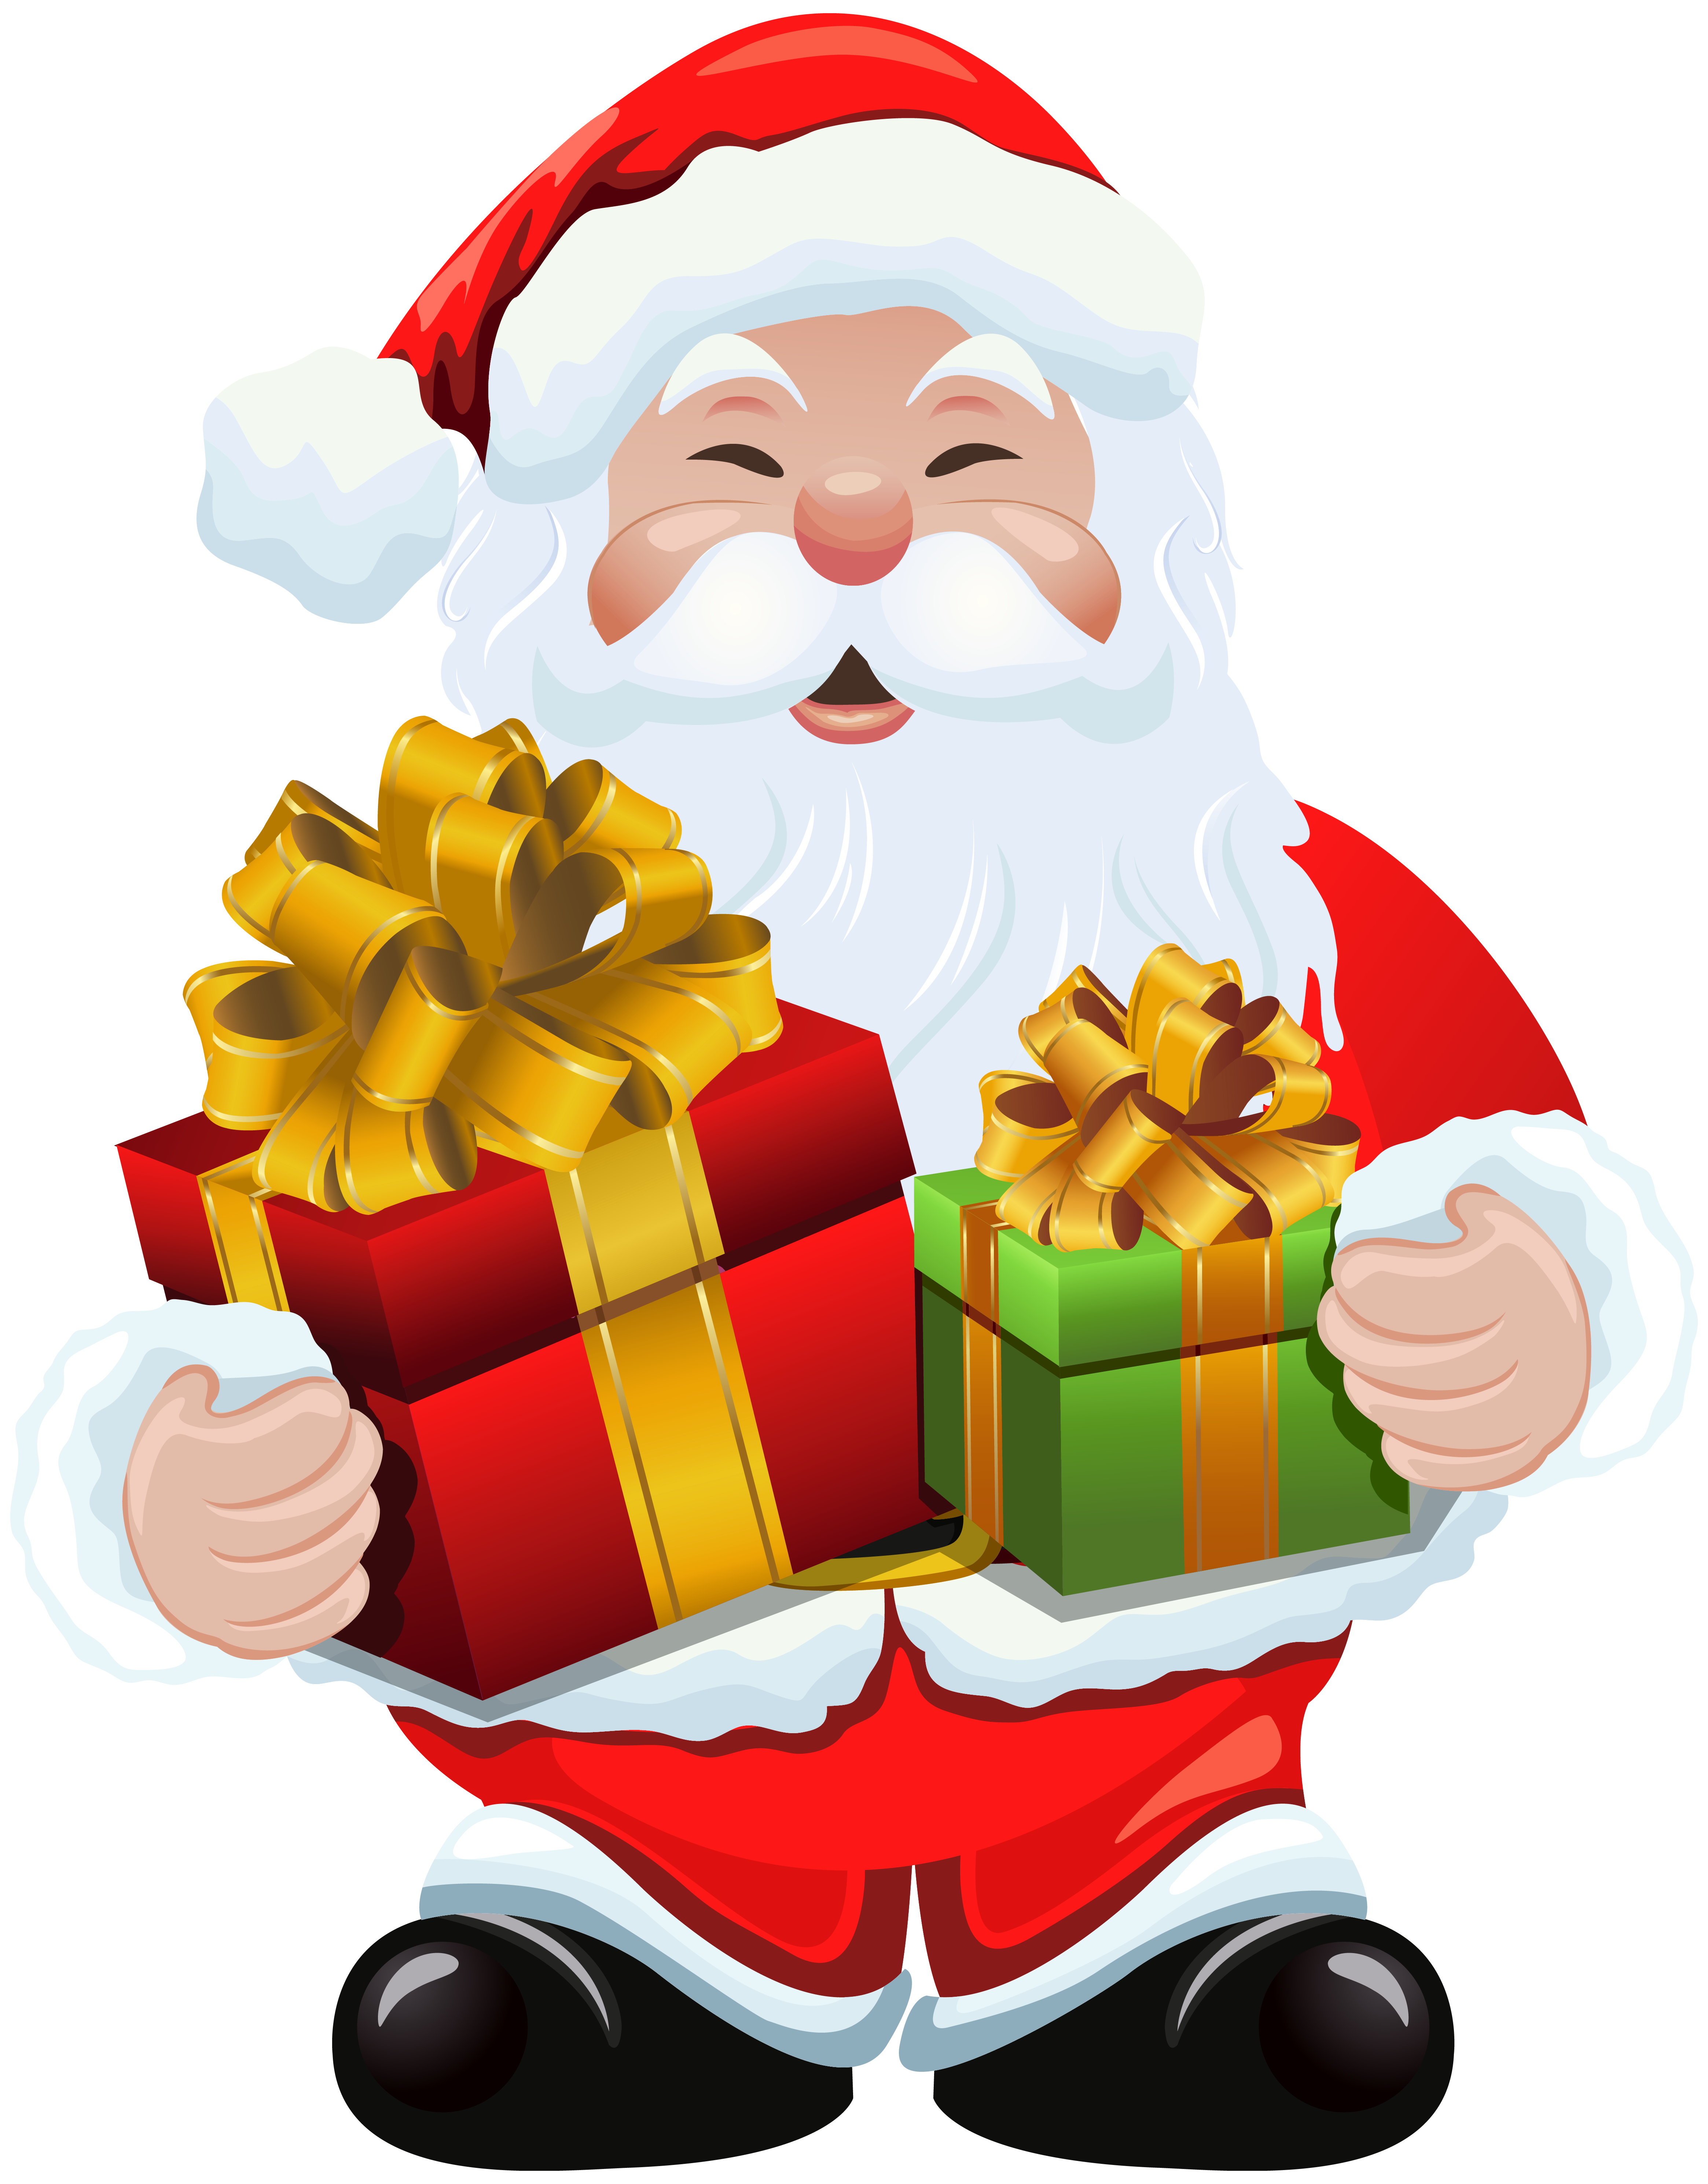 a86a8c2759bde 4659x5959 Santa Claus With Gifts Clipart